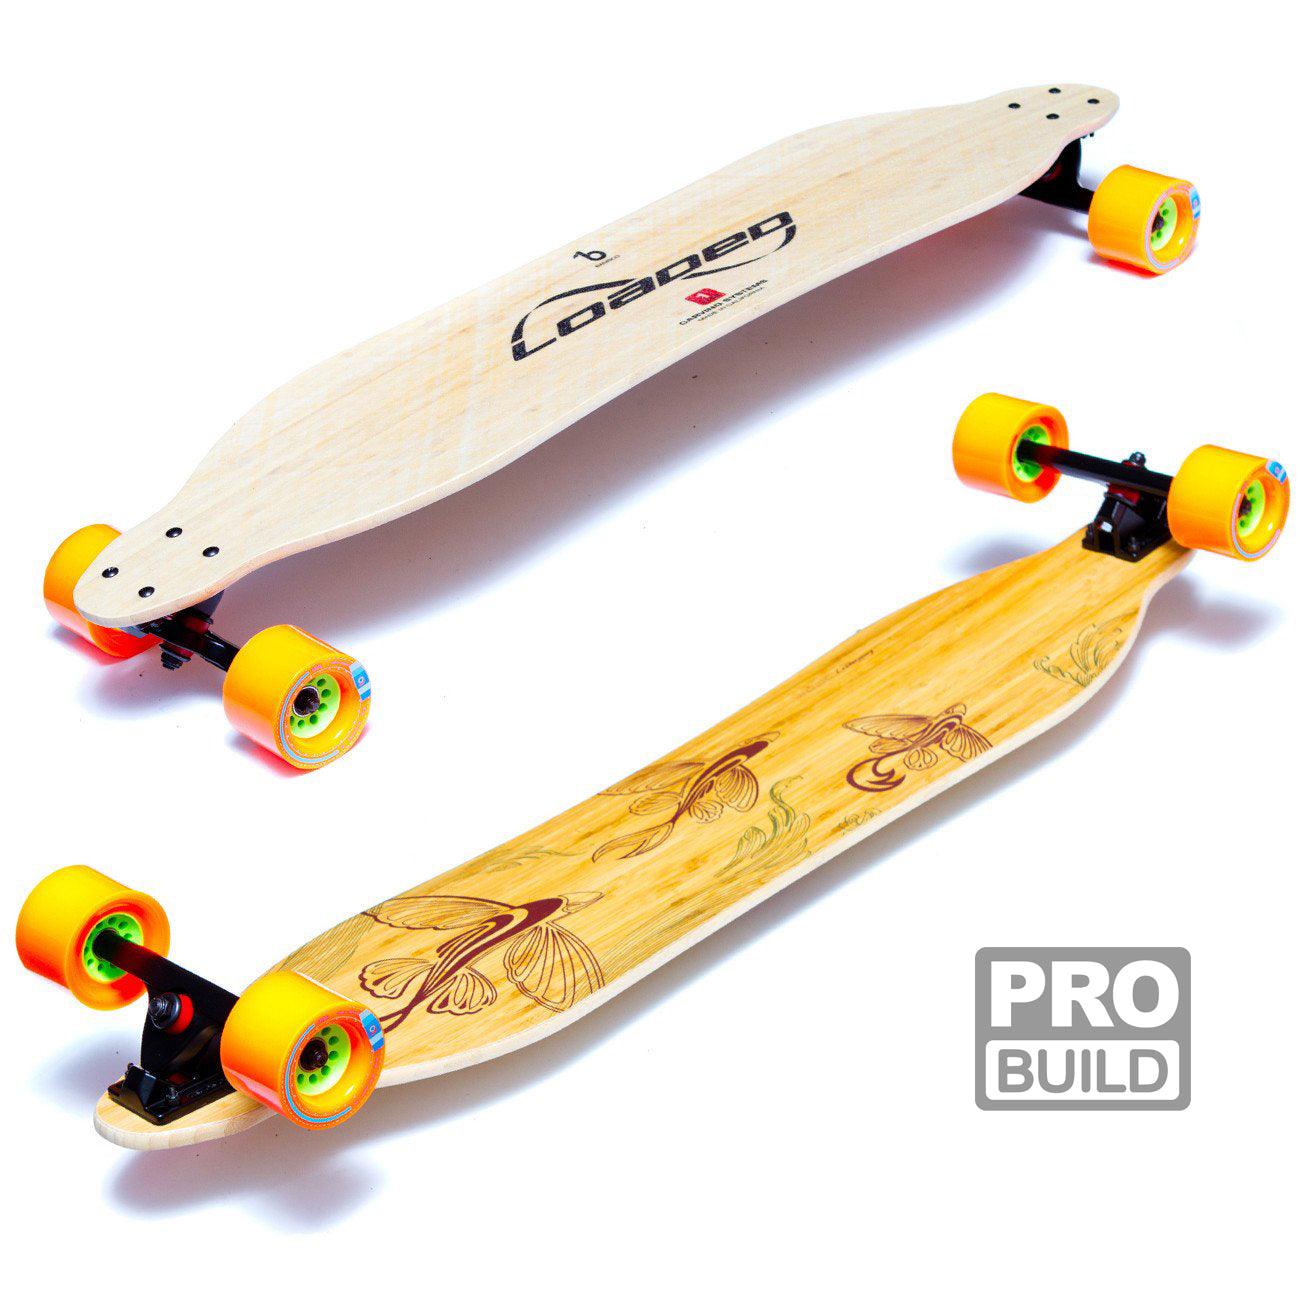 Loaded Boards Vanguard Bamboo Longboard Skateboard Deck